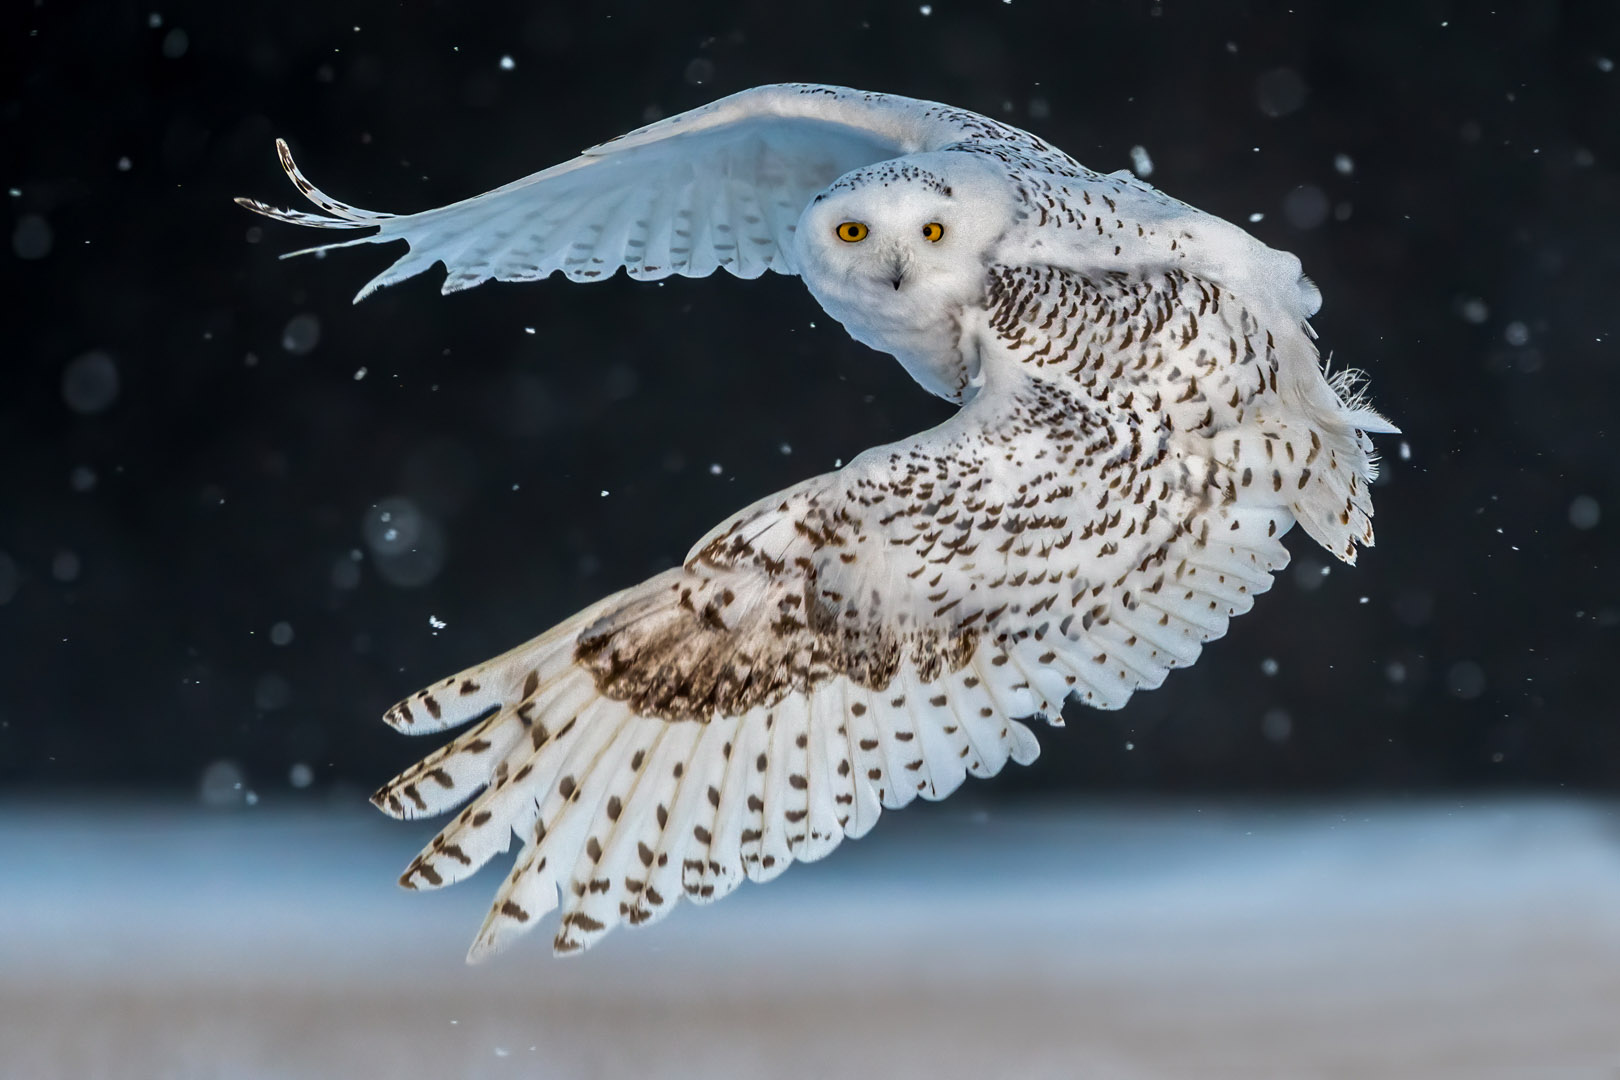 Vincent Filteau – Snowy Owl on snowy day – HM